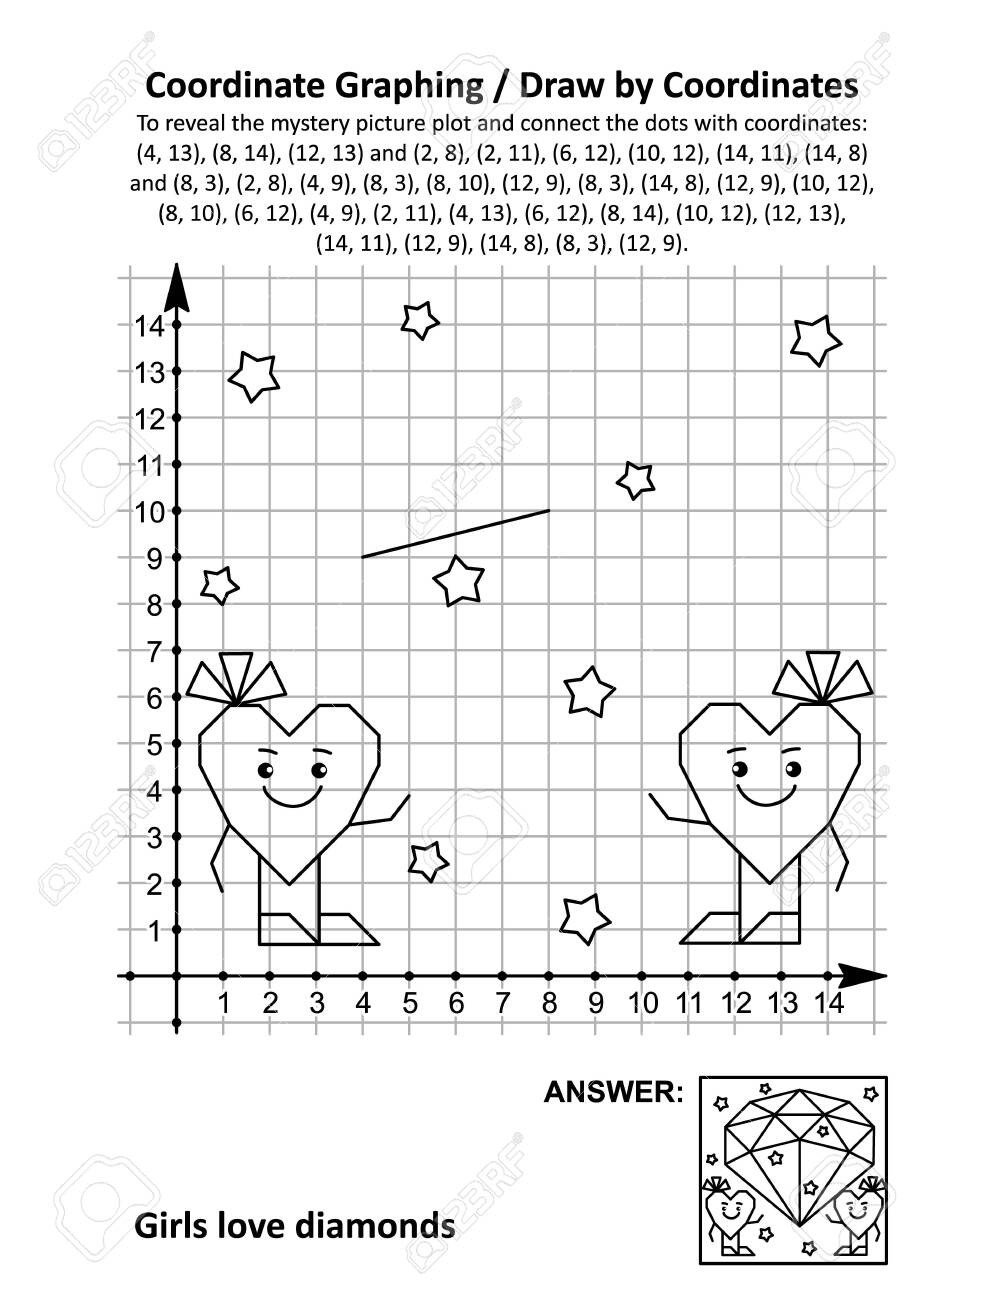 photo stock vector coordinate graphing or draw by coordinates math worksheet with st valentine s day mystery picture gi